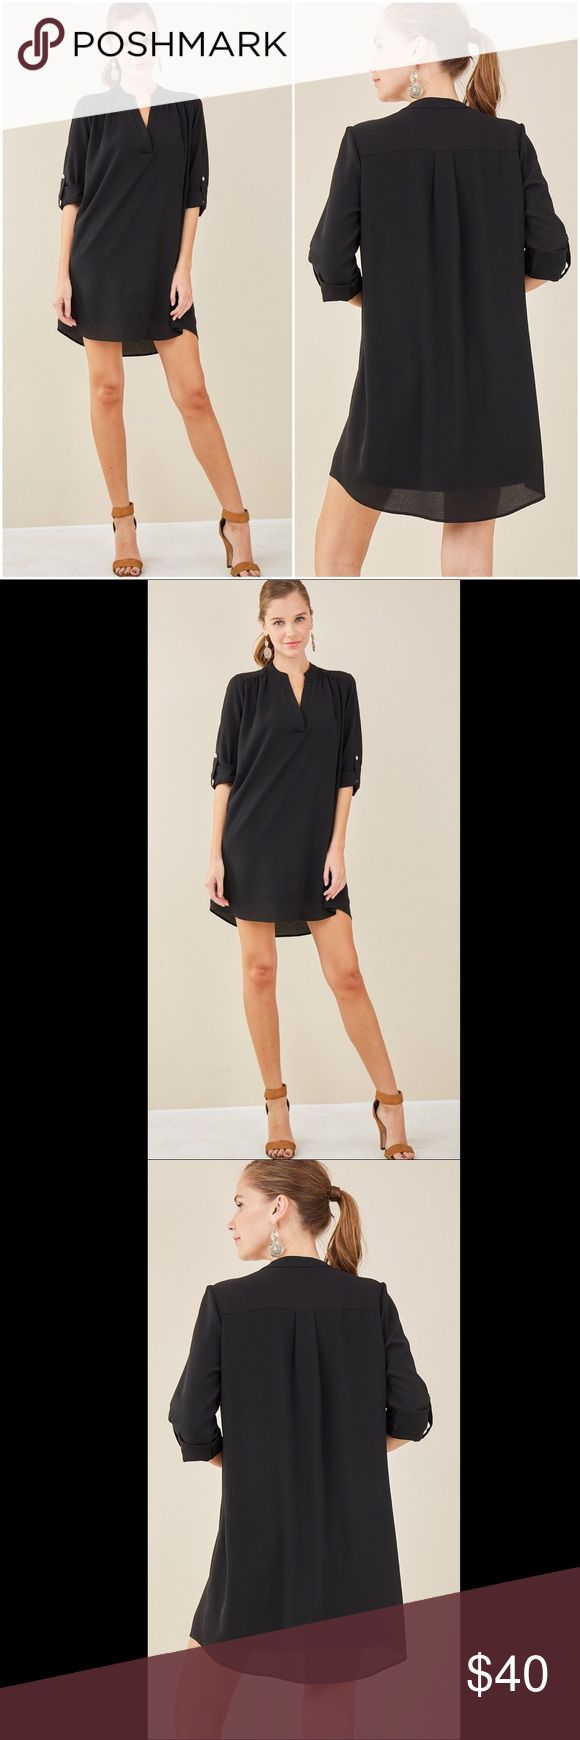 ✨🆕✨V-Neck Dress with Roll-Up Sleeves - Black V-Neck Dress with Roll-Up Sleeves - Black stretchy knit lining - Made in USA - Black non-stretchy woven self - 3/4 roll-up sleeves - V neckline - Self: 100% polyester   NOTE: dry clean or hand wash cold, do not bleach, hang/line dry. Dresses